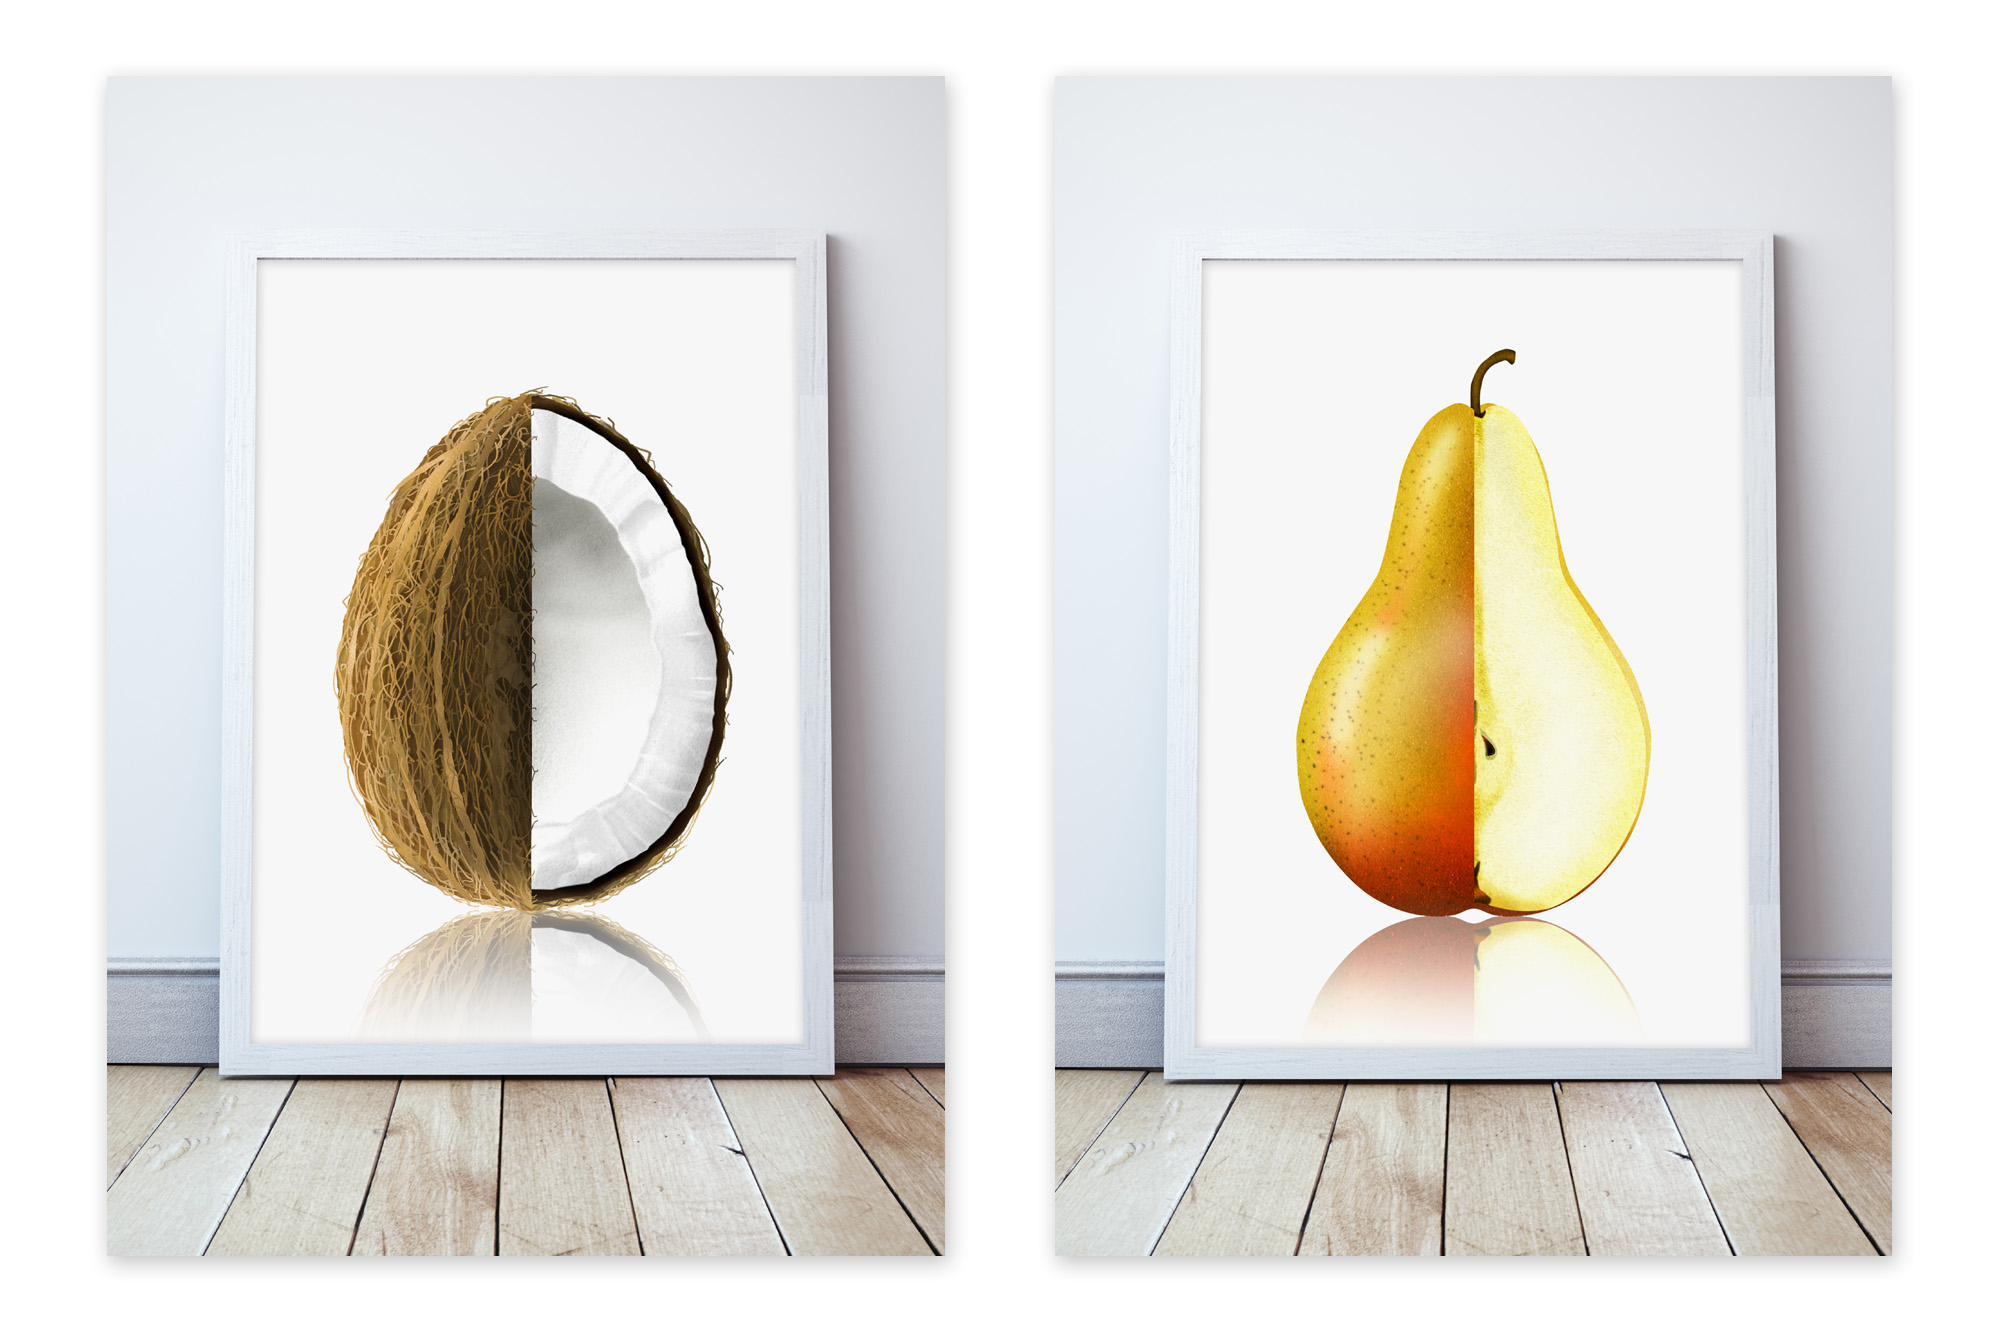 nick-purser-ikon-food-illustration-d